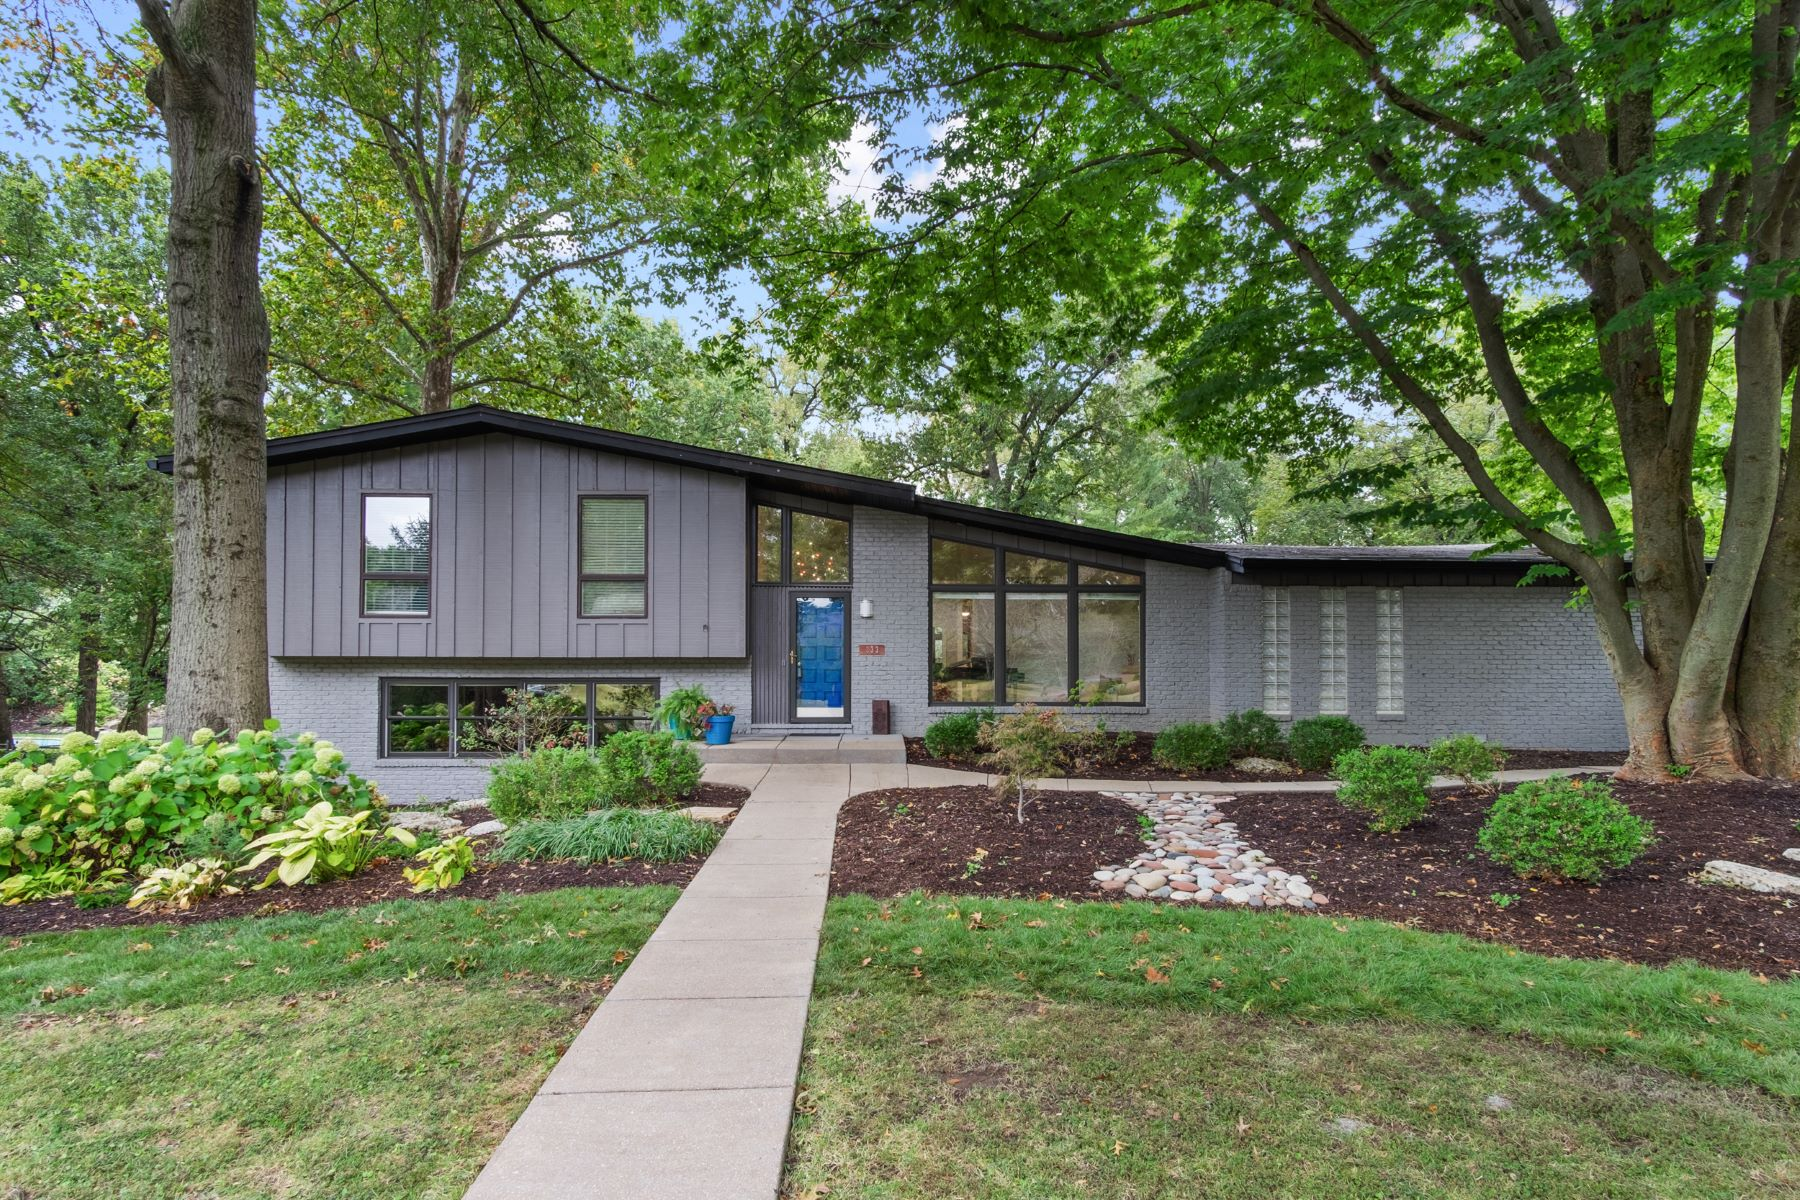 Single Family Homes for Sale at Gorgeous Mid-Century Multi-Level Home 333 Magna Carta Drive Creve Coeur, Missouri 63141 United States